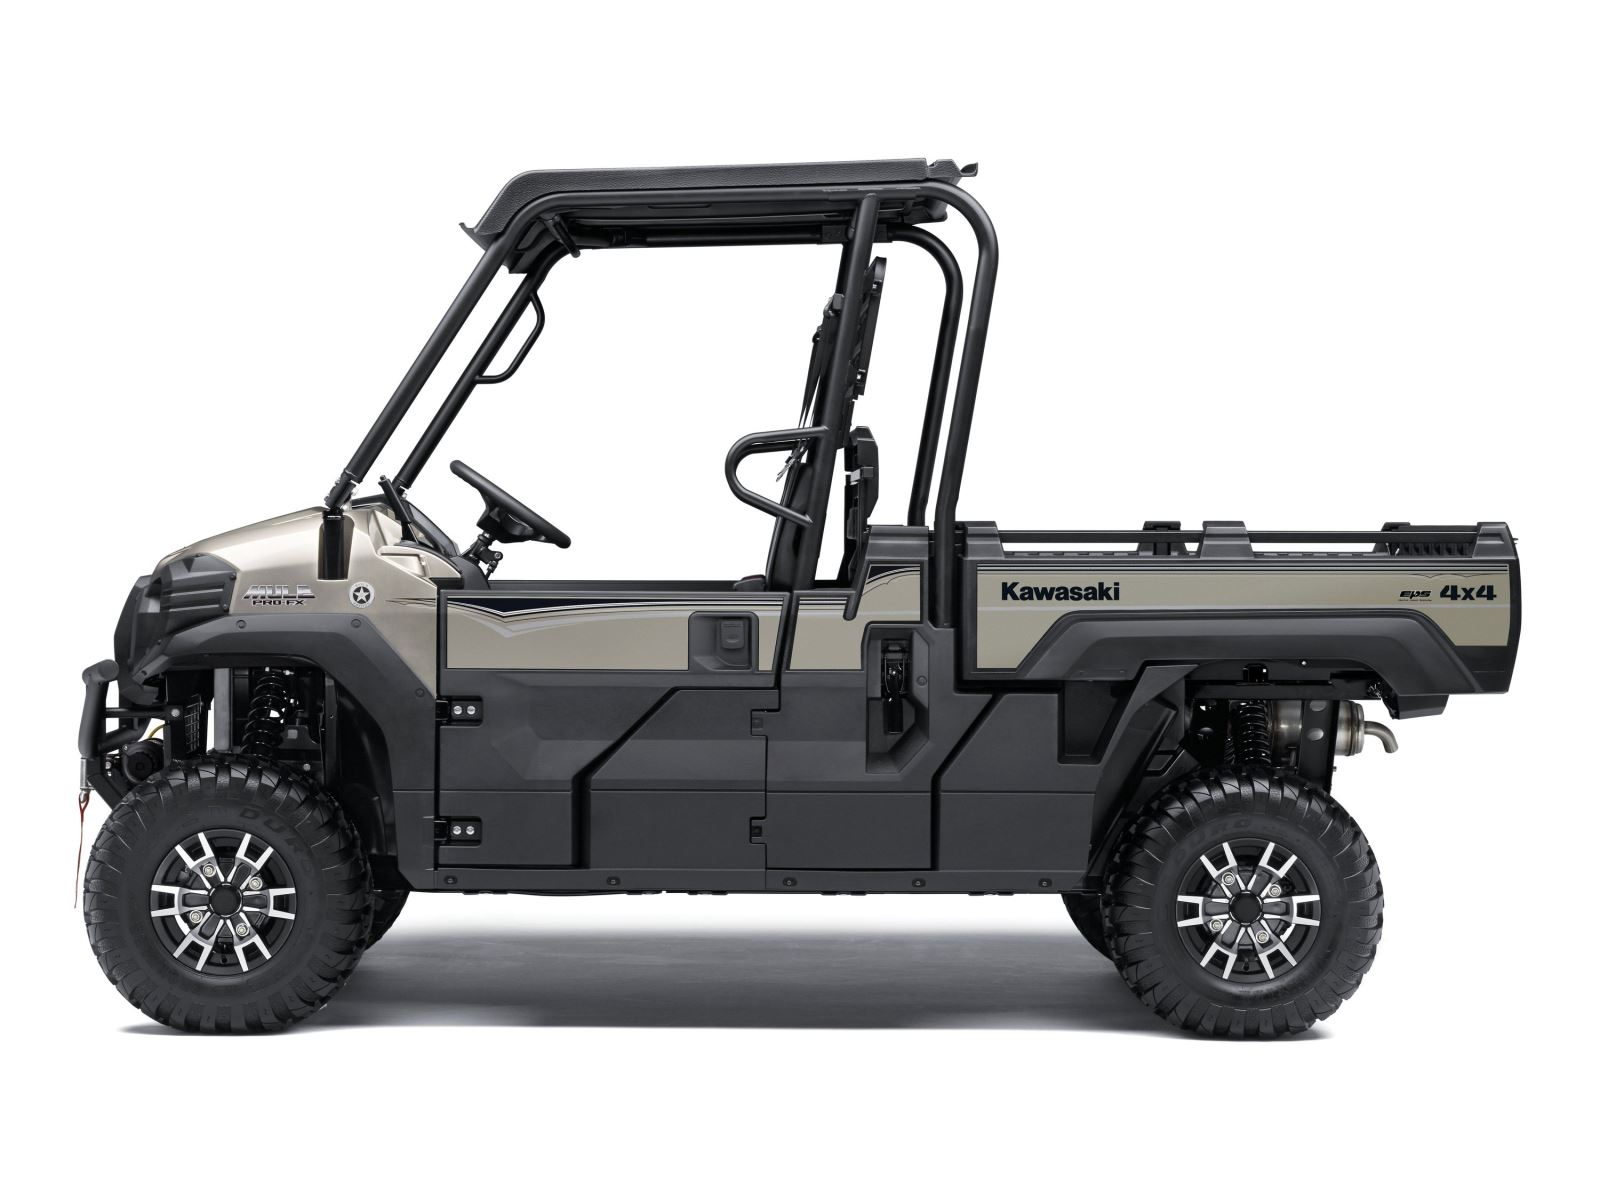 2017 Kawasaki Mule Pro Fx Ranch Edition Special Side By Diesel Fuel Filter Brings Premium Style For Those That Want To Stand Out In A Crowd Dirt Toys Magazine